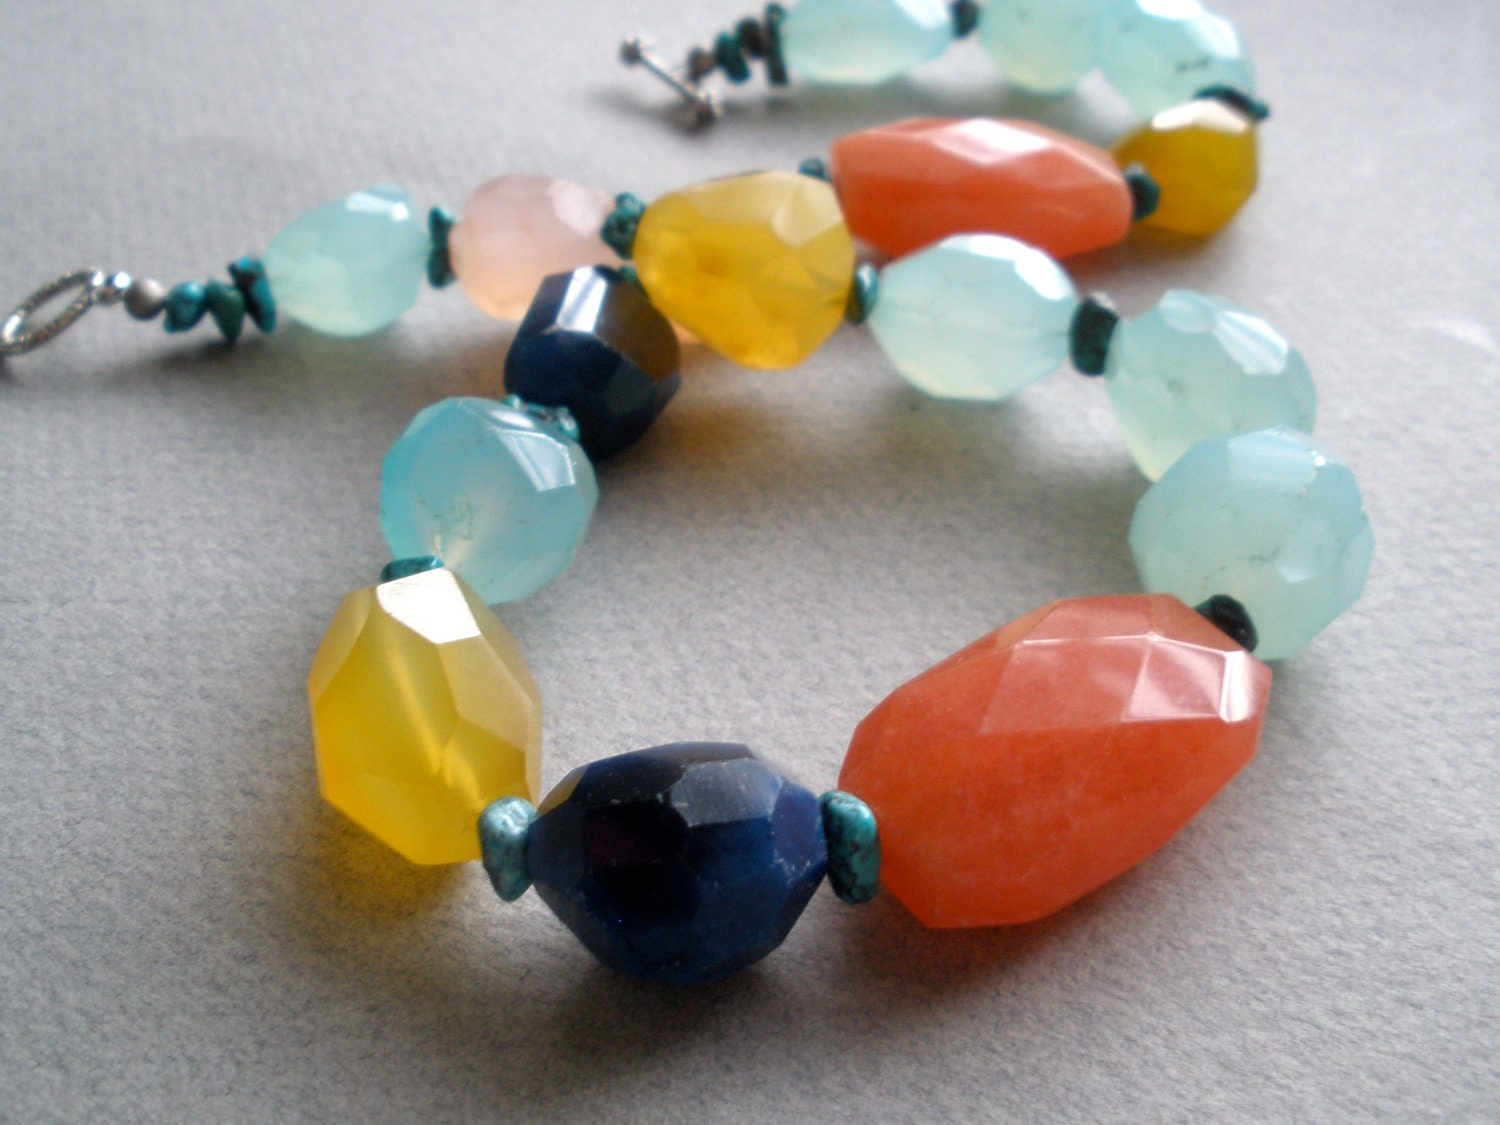 Carnival V - Chunky faceted colorful gemstone necklace in cobalt, aqua, honey yellow, pink and tangerine